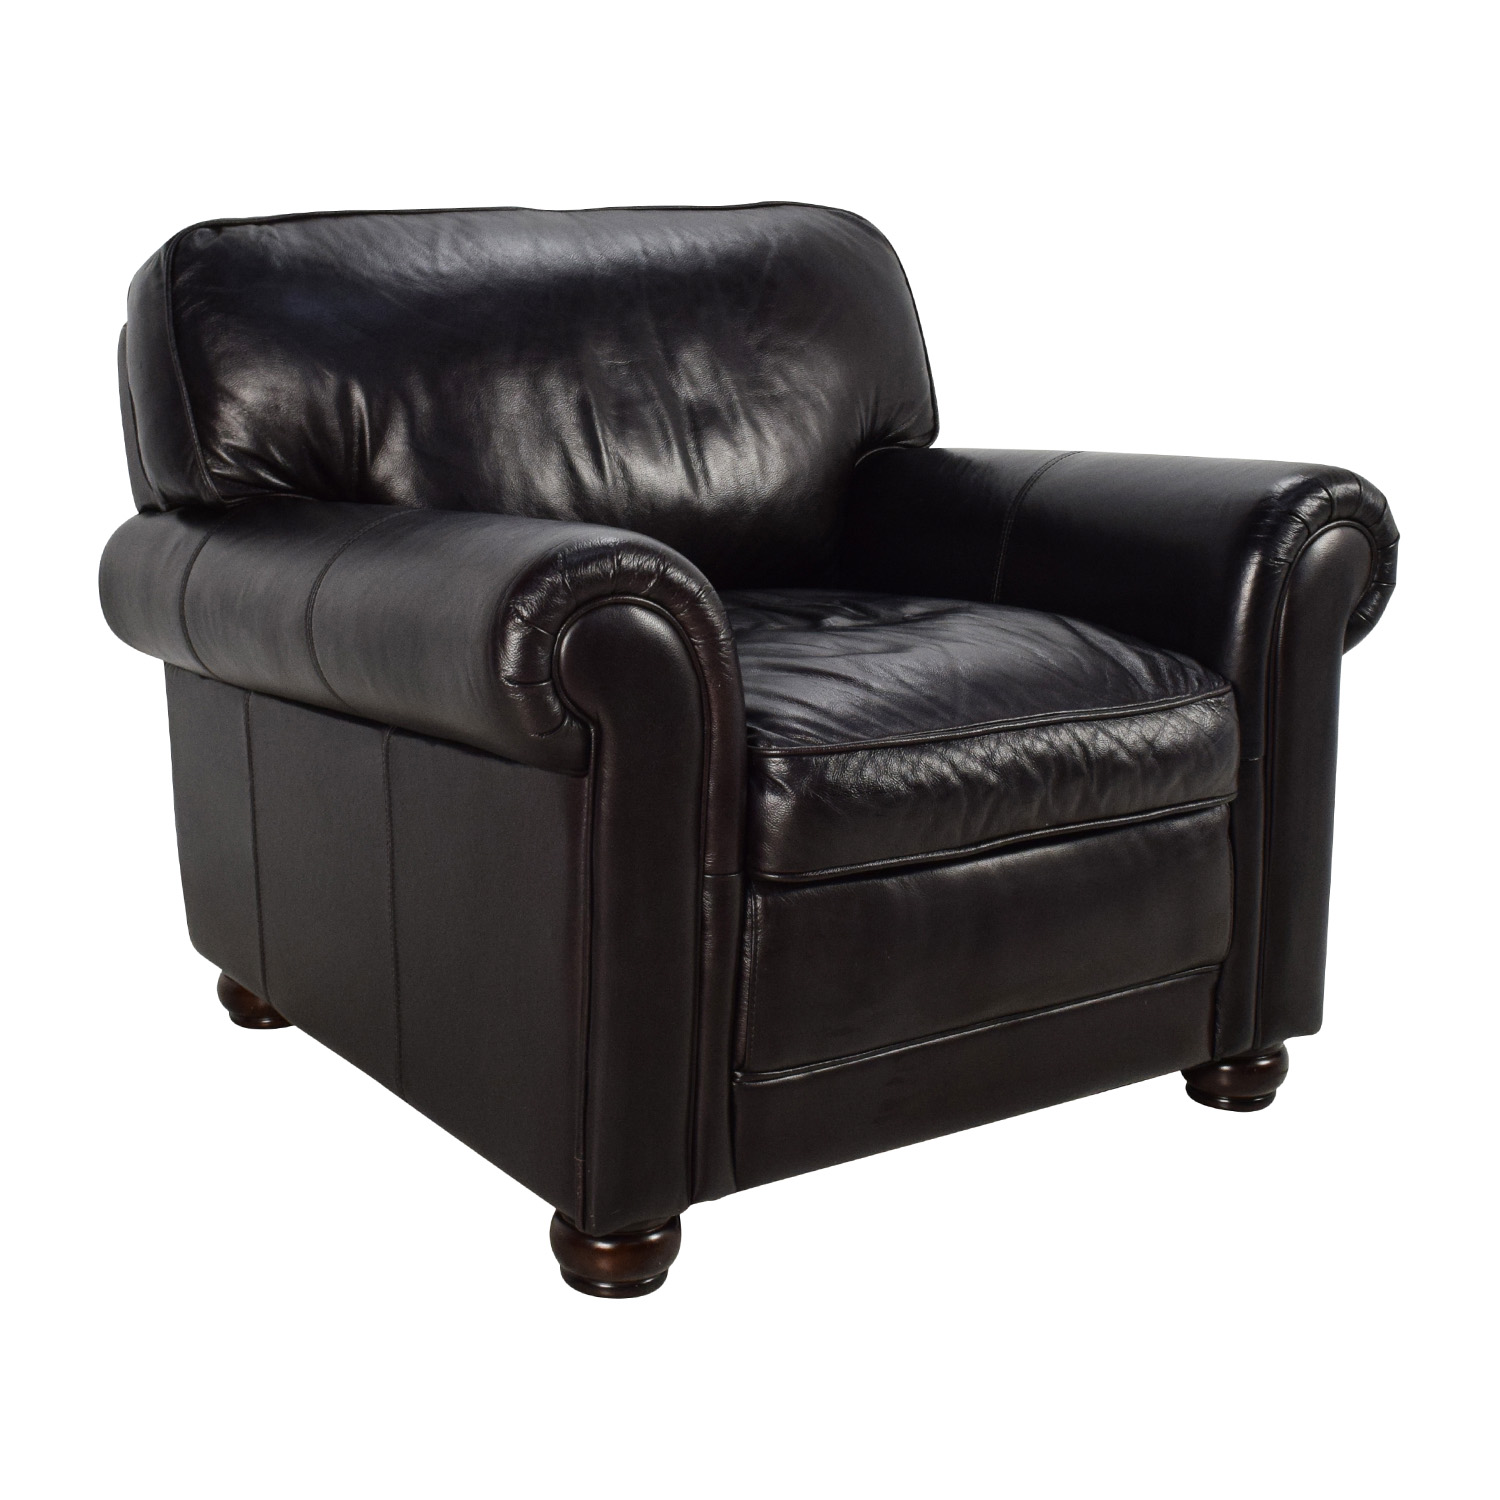 74% OFF Bobs Furniture Bob s Furniture Leather Dark